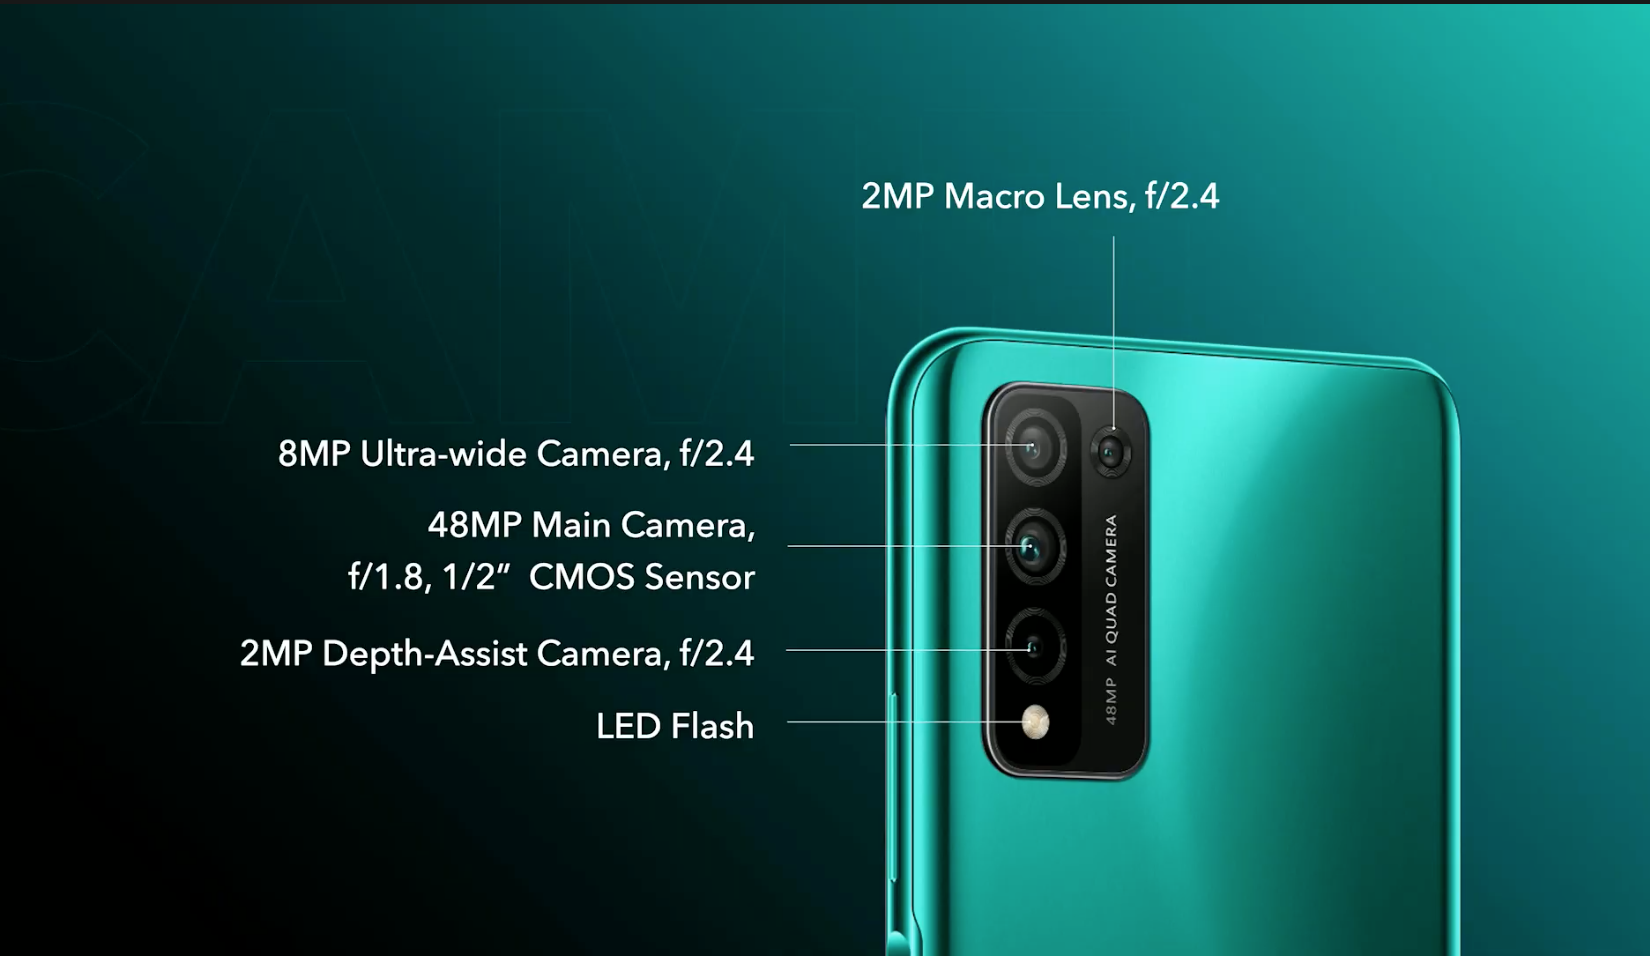 HONOR 10X Lite launched with a 5,000mAh battery with 22.5W fast charge 3